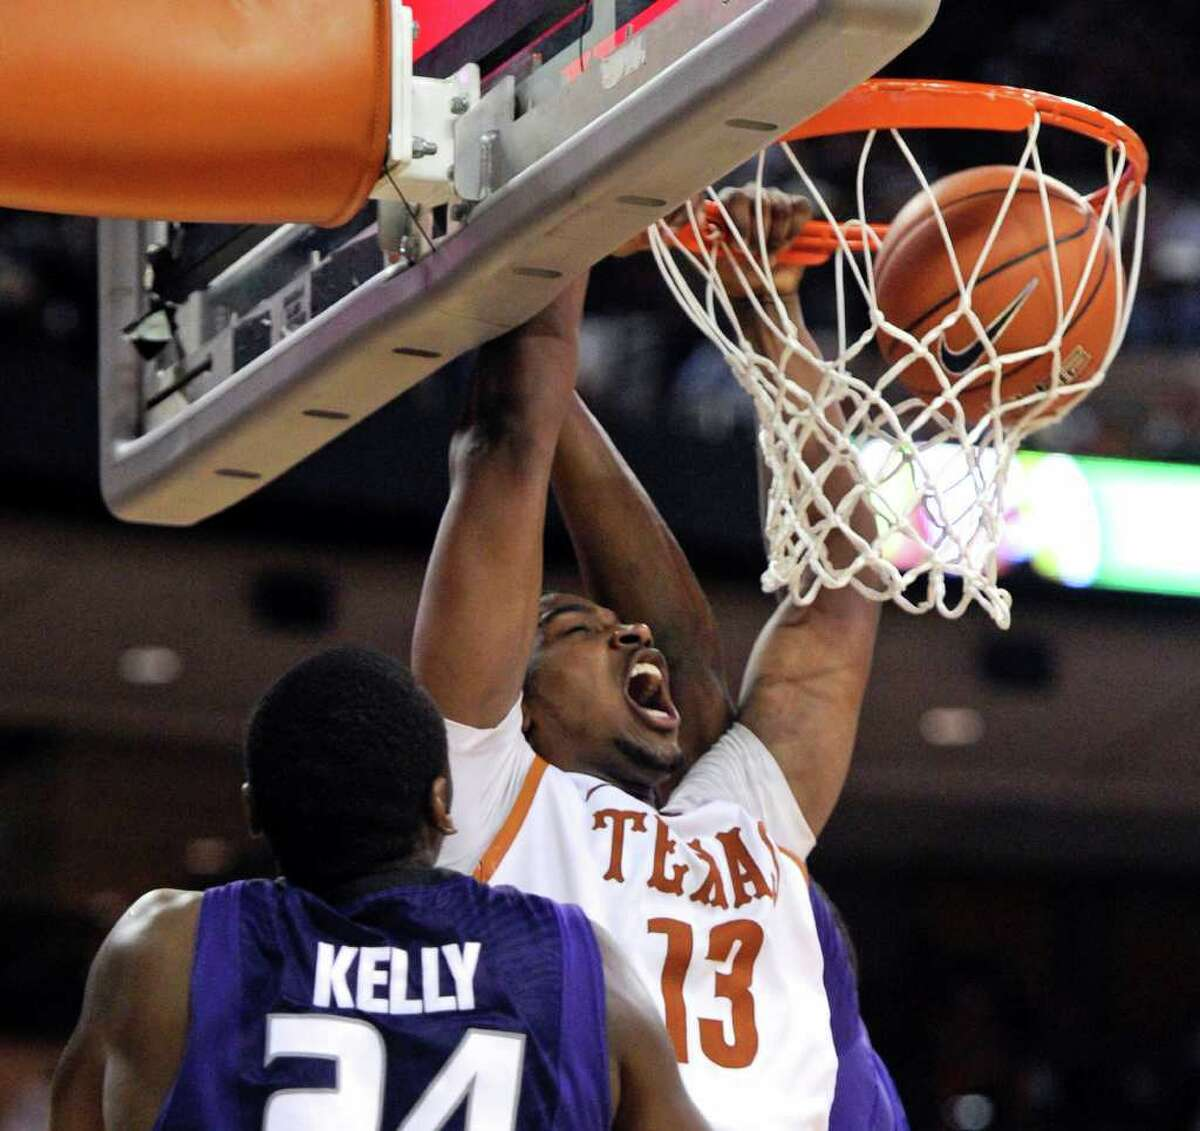 Texas forward Tristan Thompson (center) dunks the ball against Kansas State forward Curtis Kelly (front) and center Jordan Henriquez-Roberts (rear) during the first half on Monday, Feb. 28, 2011, in Austin.